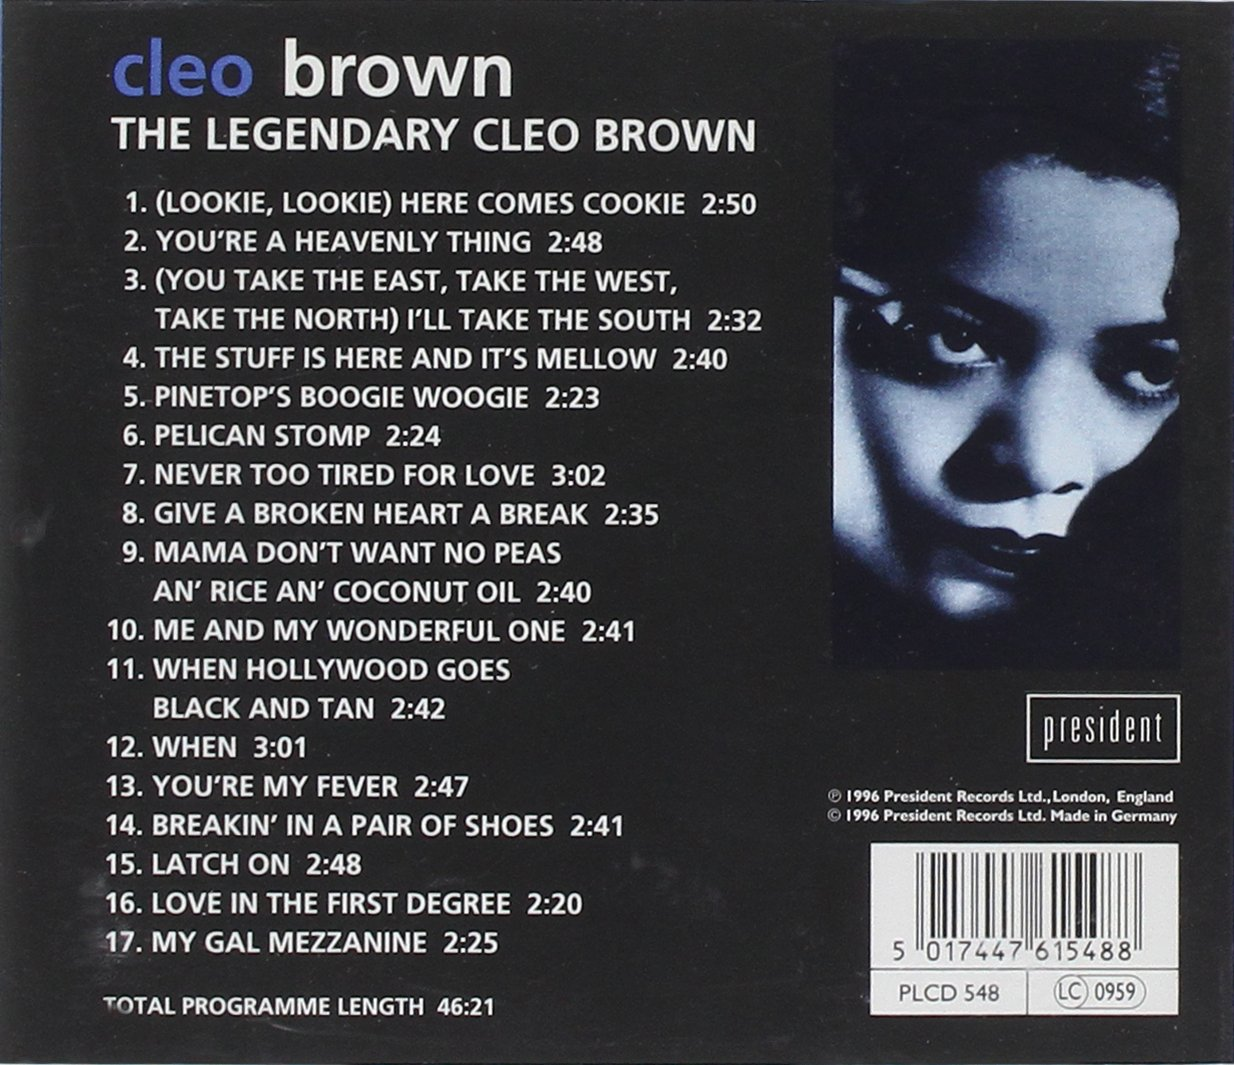 The Legendary Cleo Brown